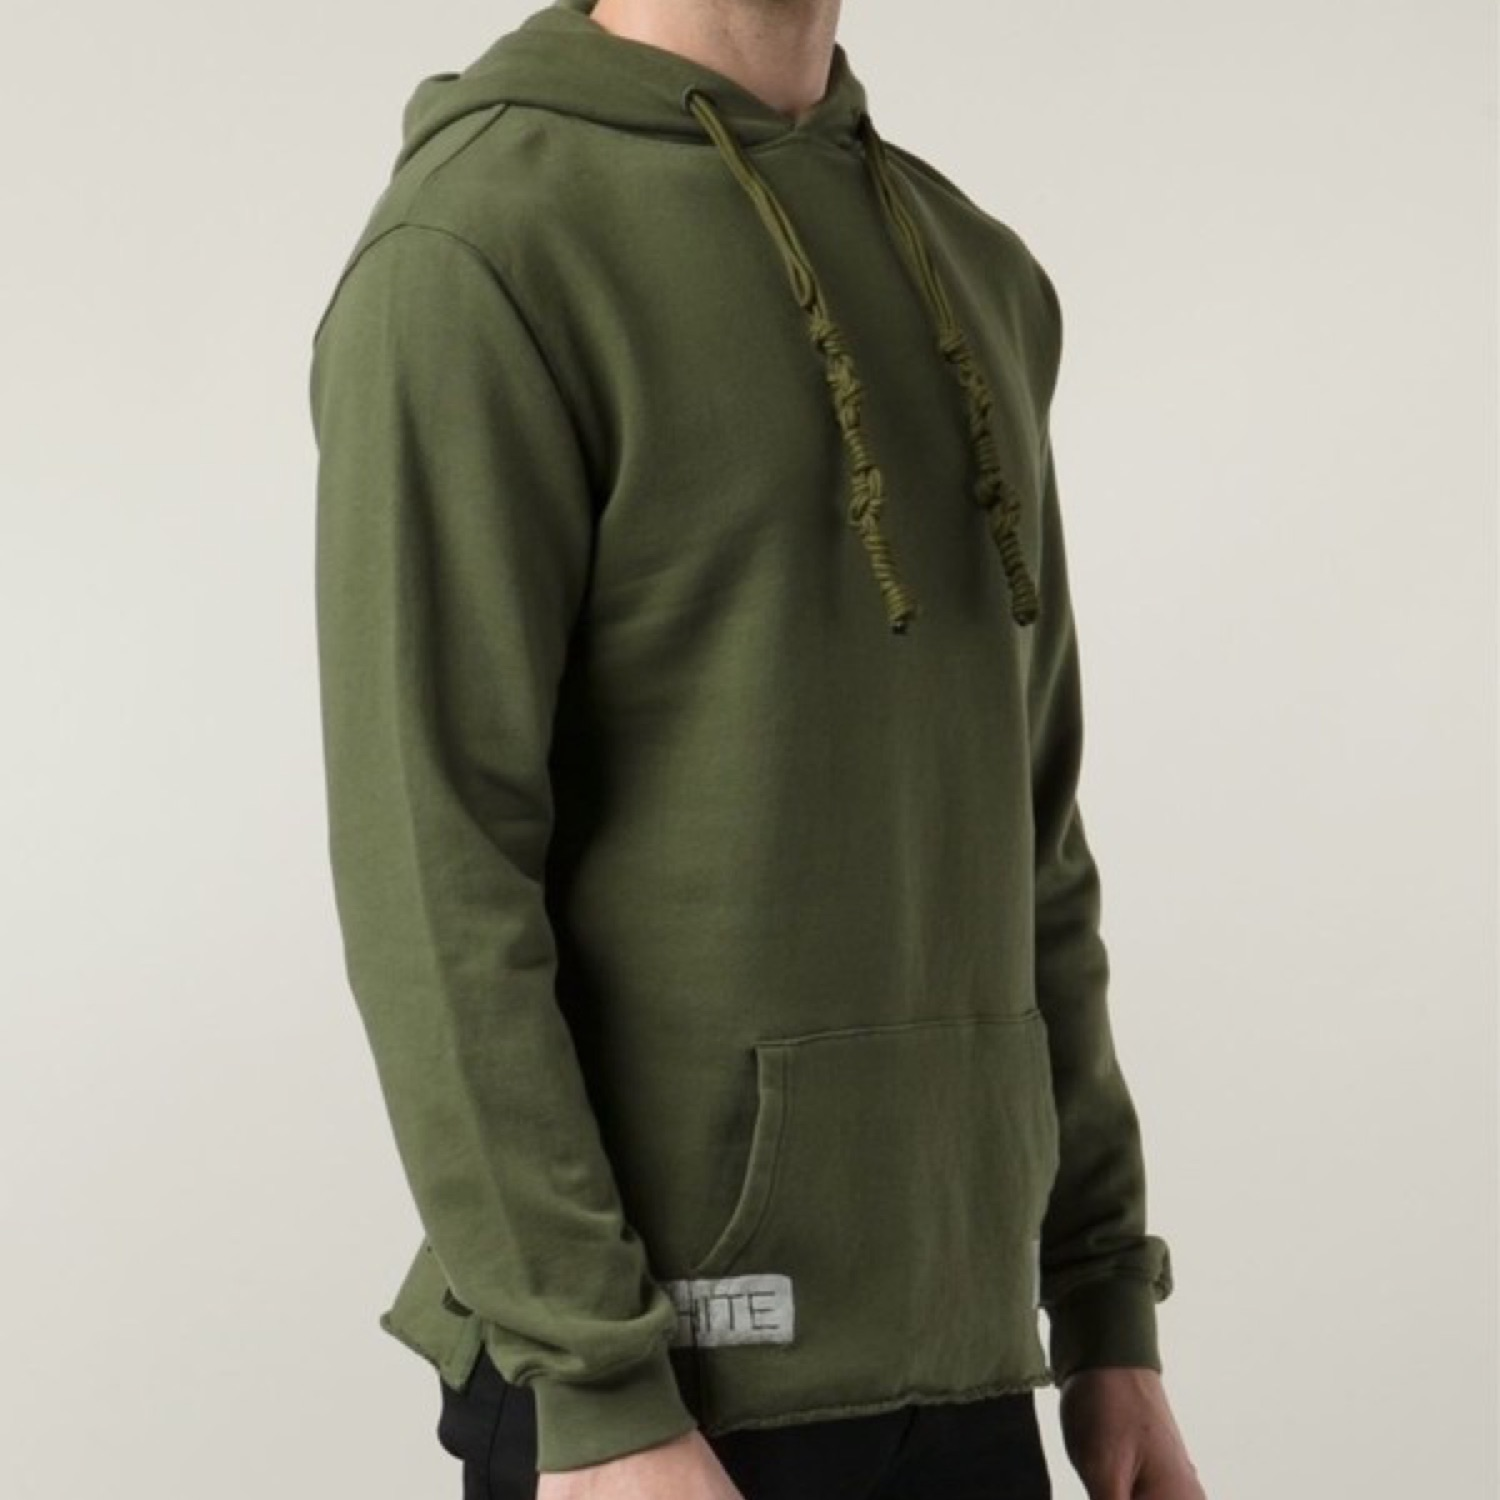 Off-White Olive Green Hoodie Size M Rarest Item